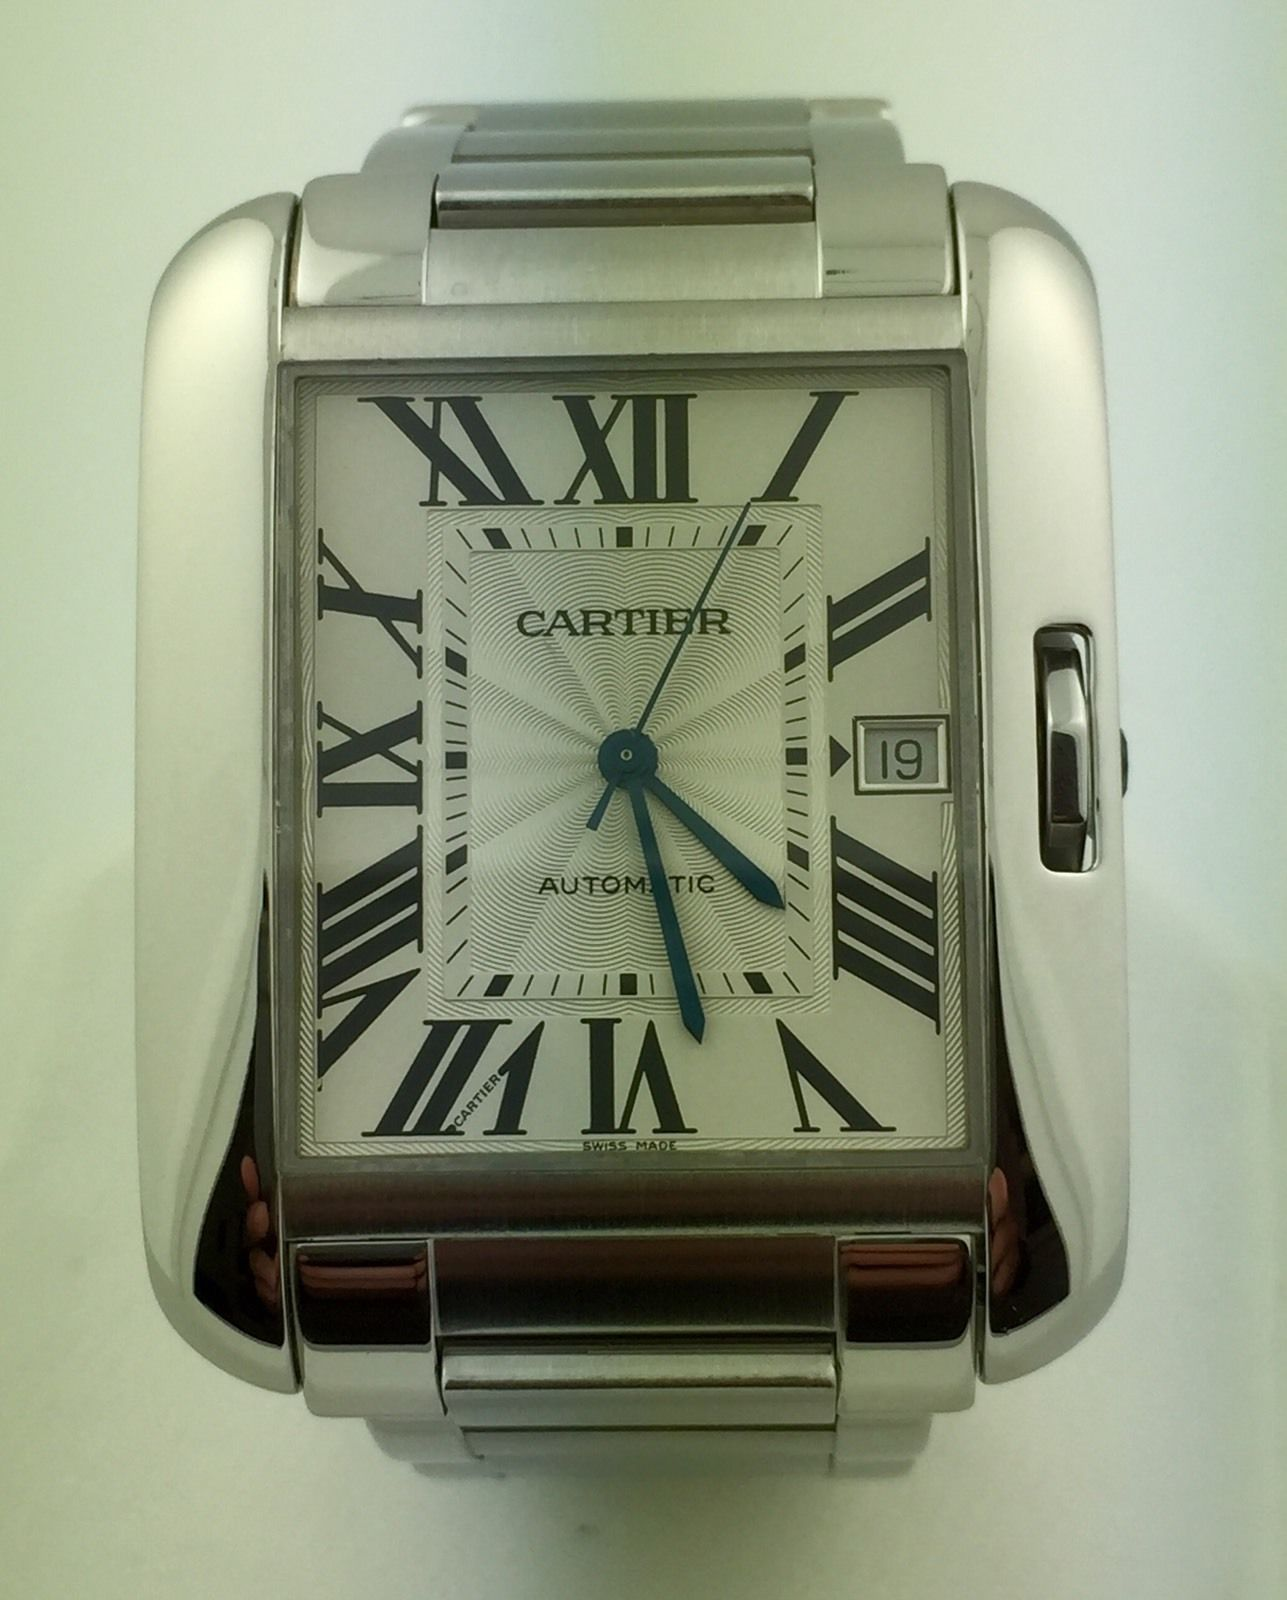 s l1600 2 4 - Cartier Tank Anglaise XL